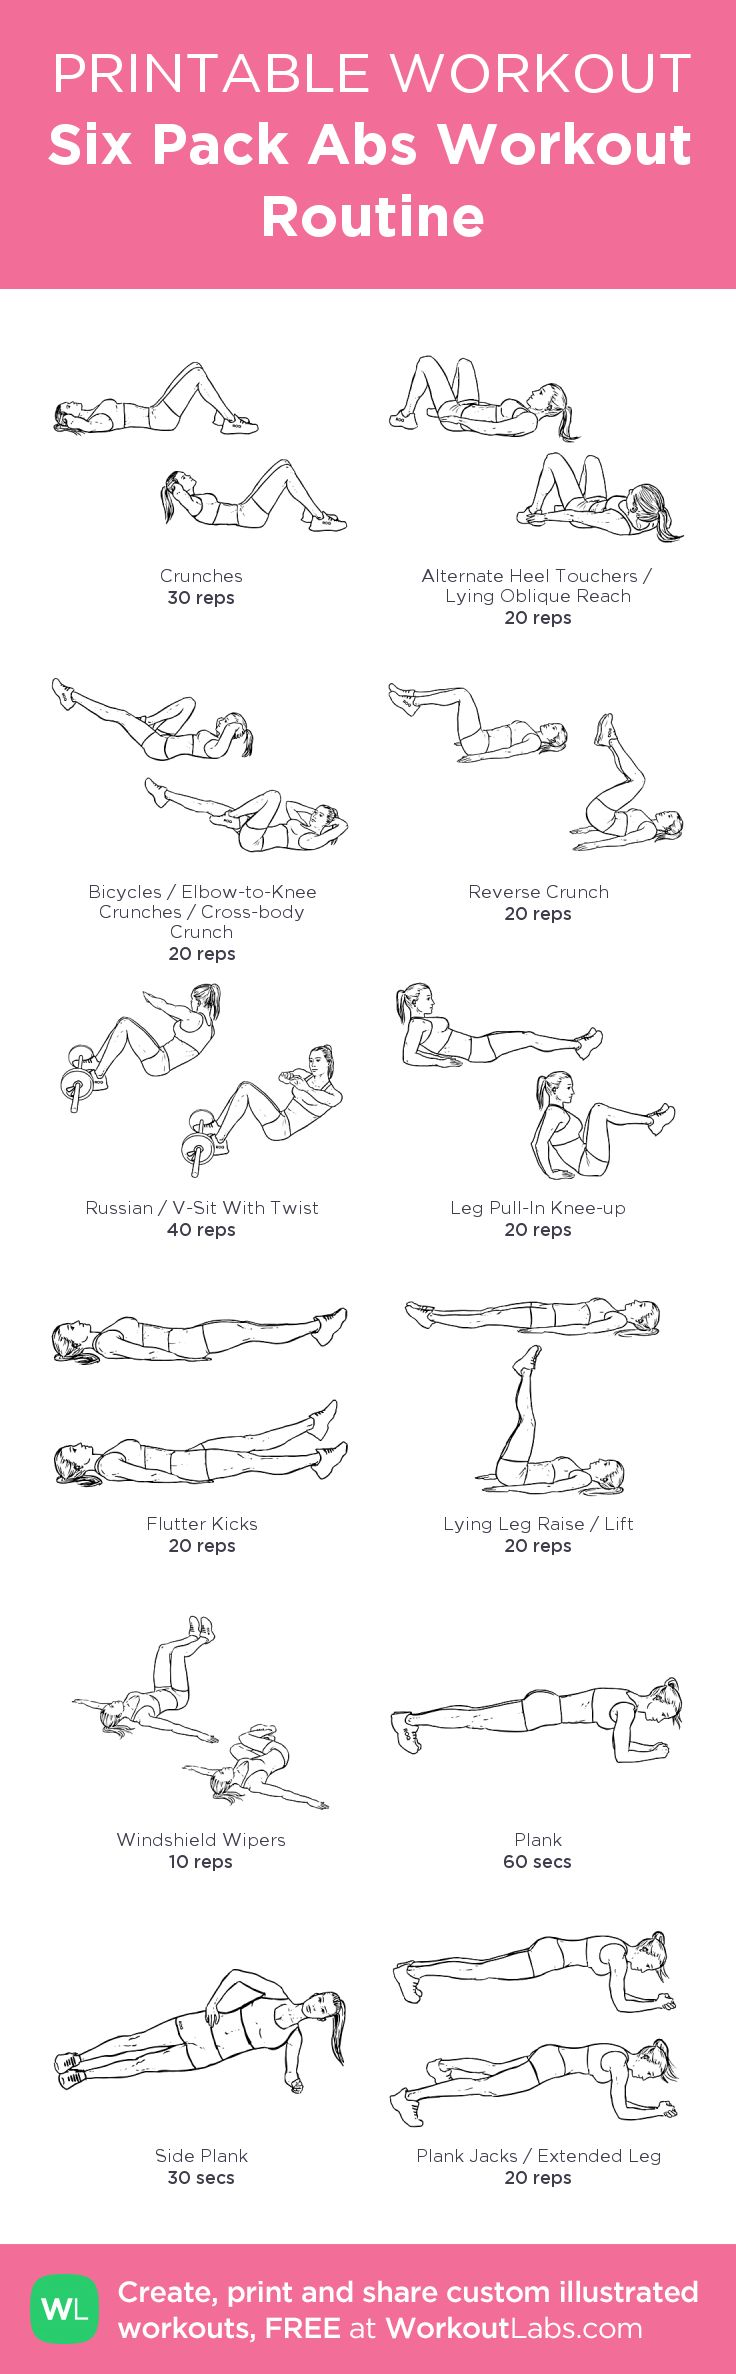 photograph regarding Printable Workout Routine known as Physical fitness Determination : 6 Pack Stomach muscles Work out Program my